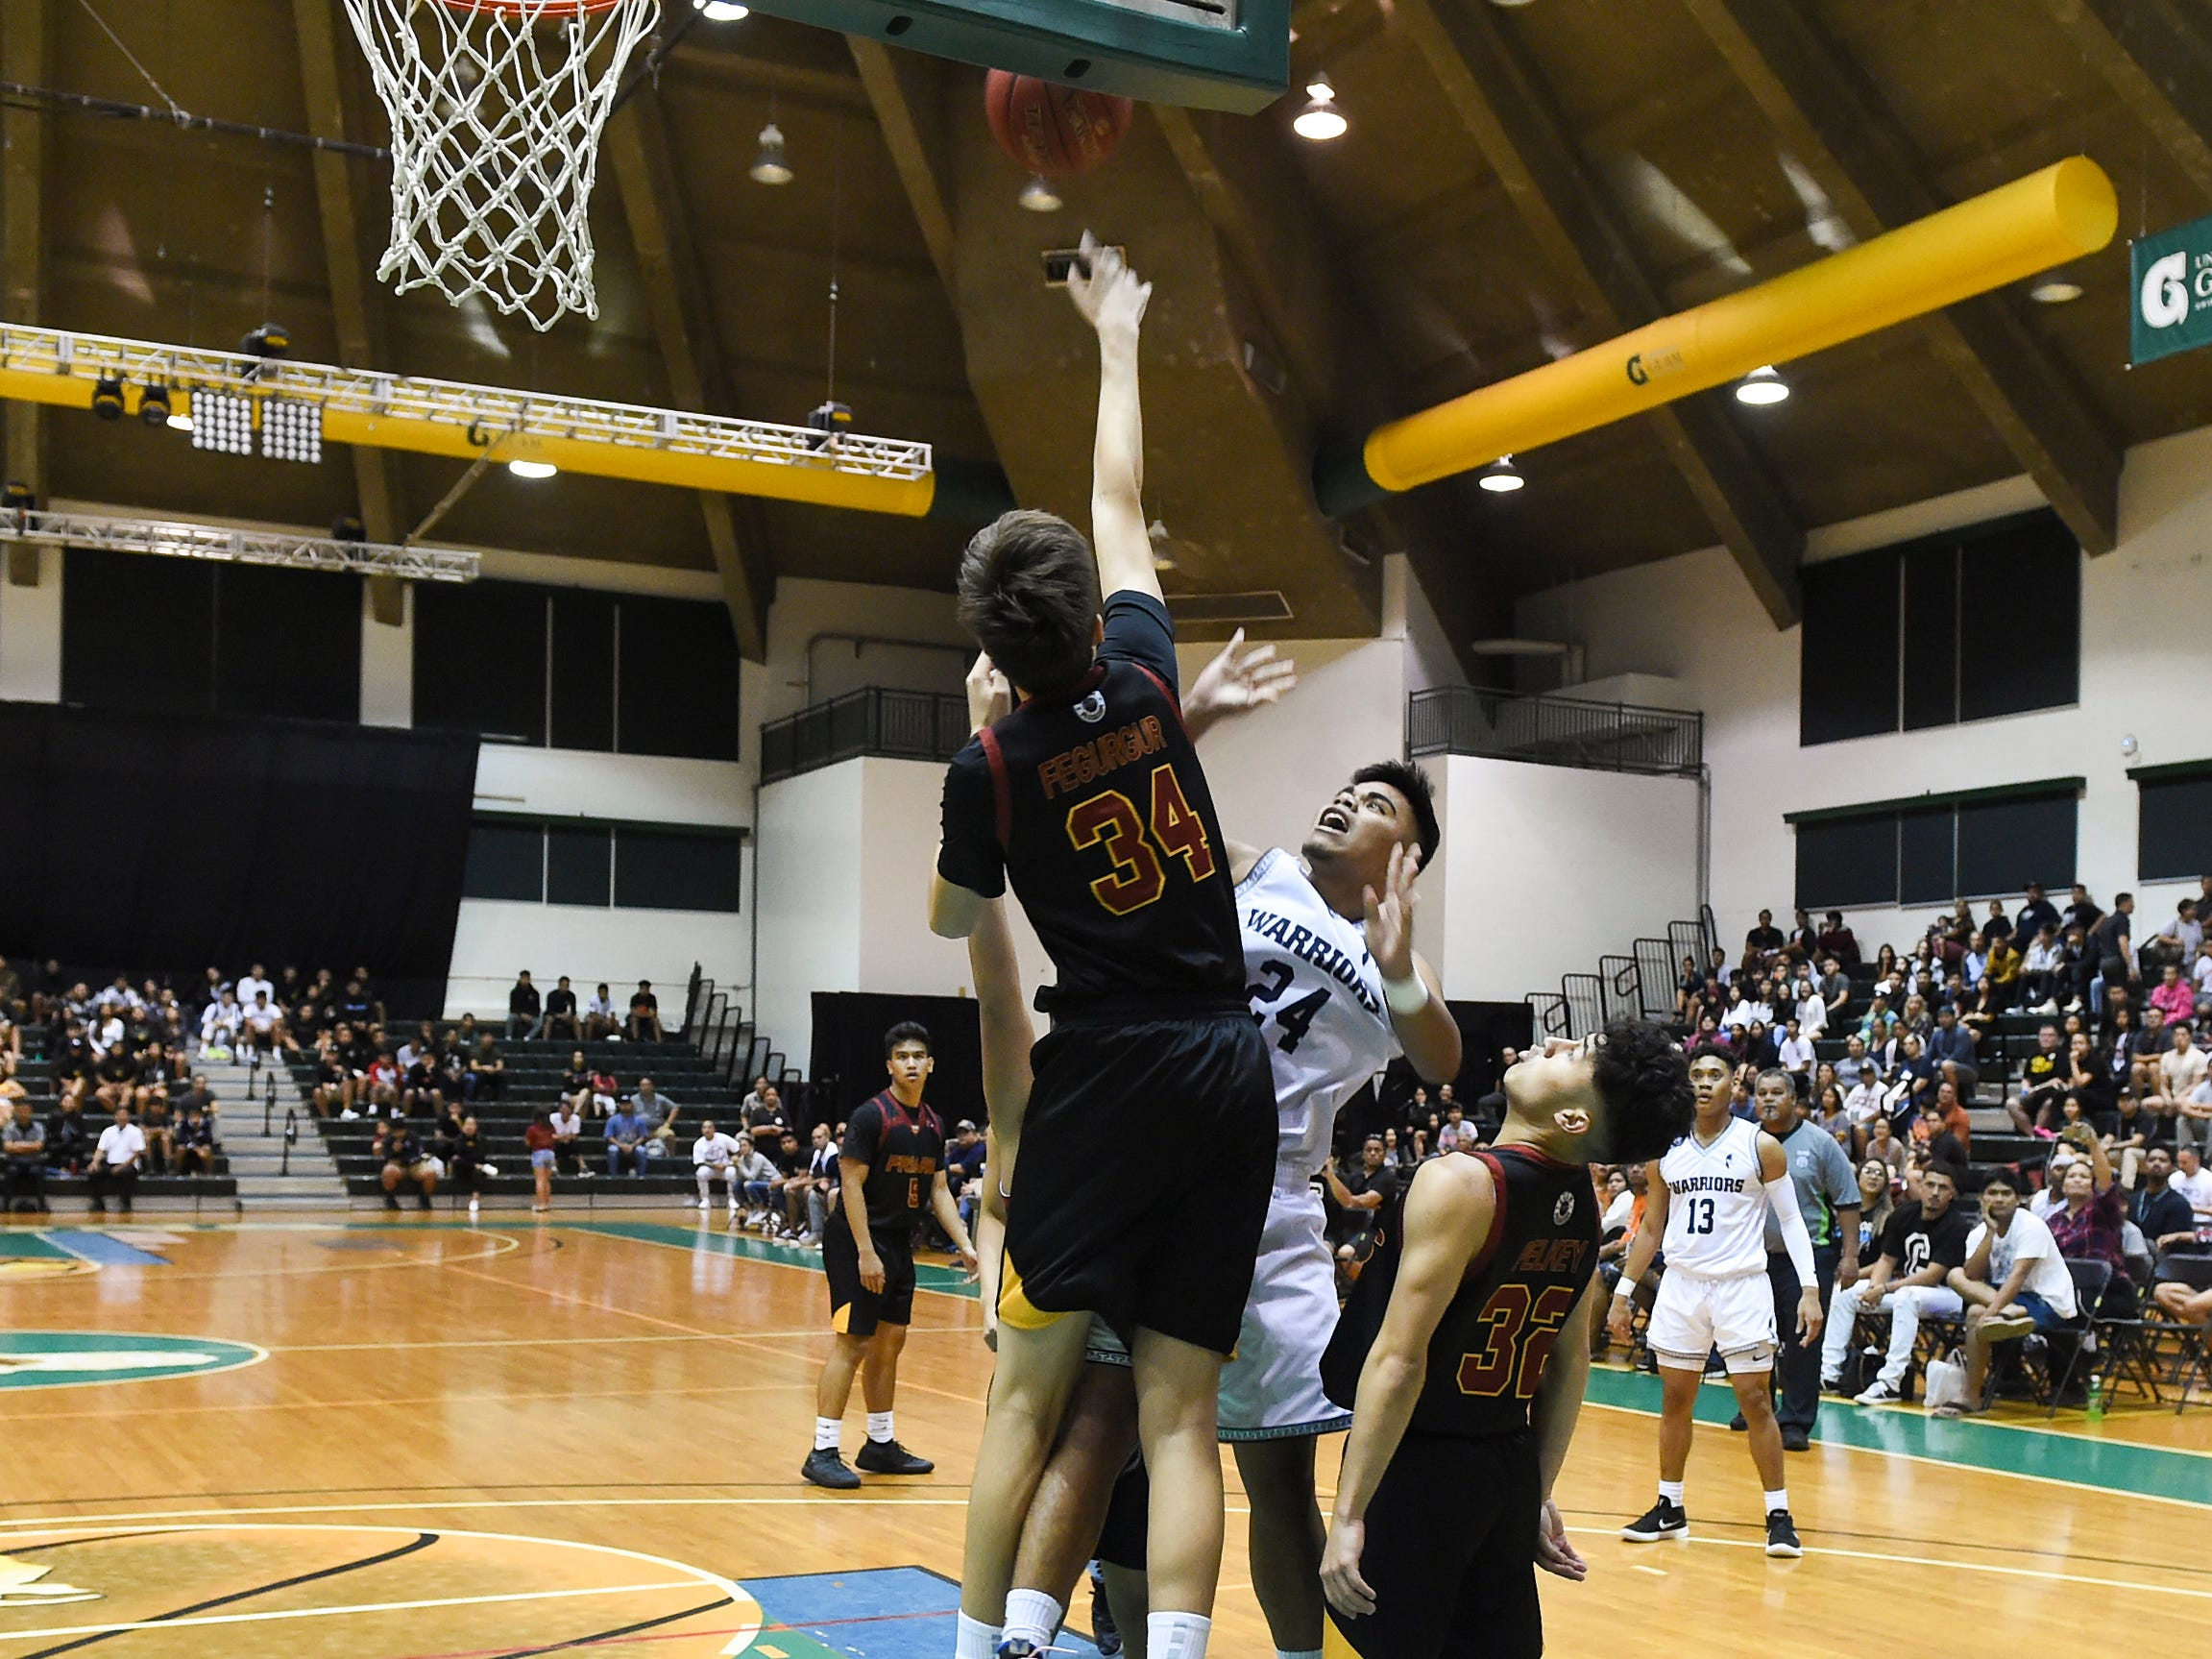 Father Duenas' Matthew Fegurgur (34) sends the ball away on a shot from St. Paul player Thelo Orichiro (24) during the IIAAG Boys' Basketball Championship game at the University of Guam Calvo Field House in Mangilao, March 15, 2019.